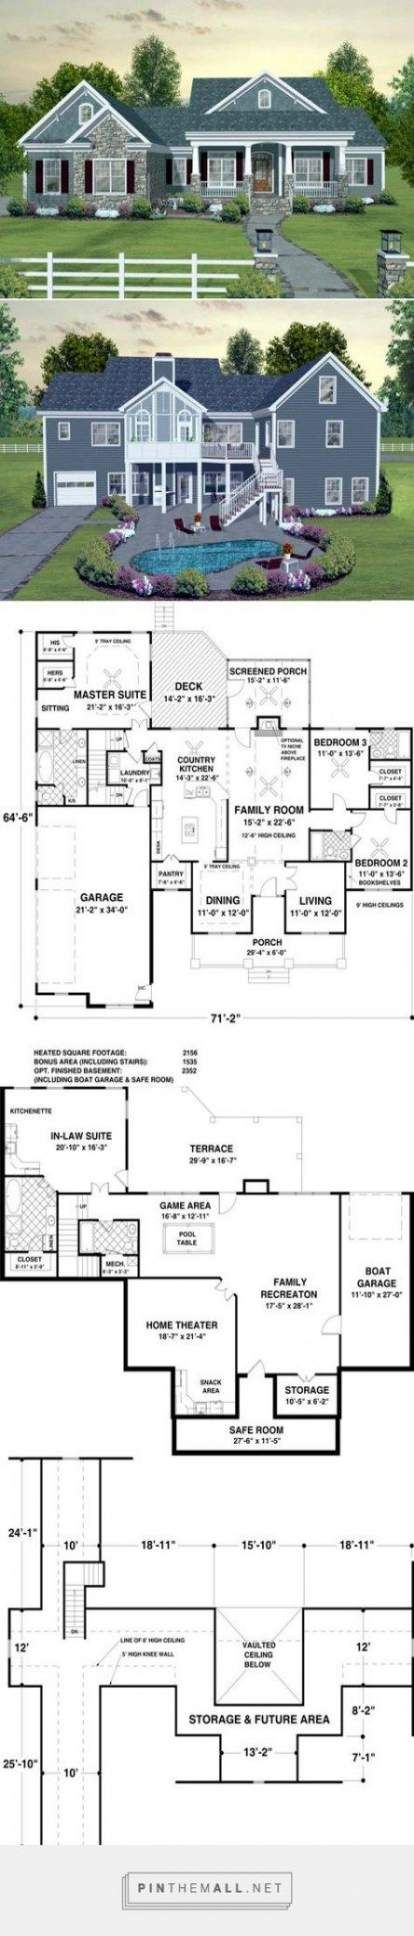 Home Plans With Walkout Basement Layout Bedrooms 57 Ideas House Plans House Layouts House Blueprints